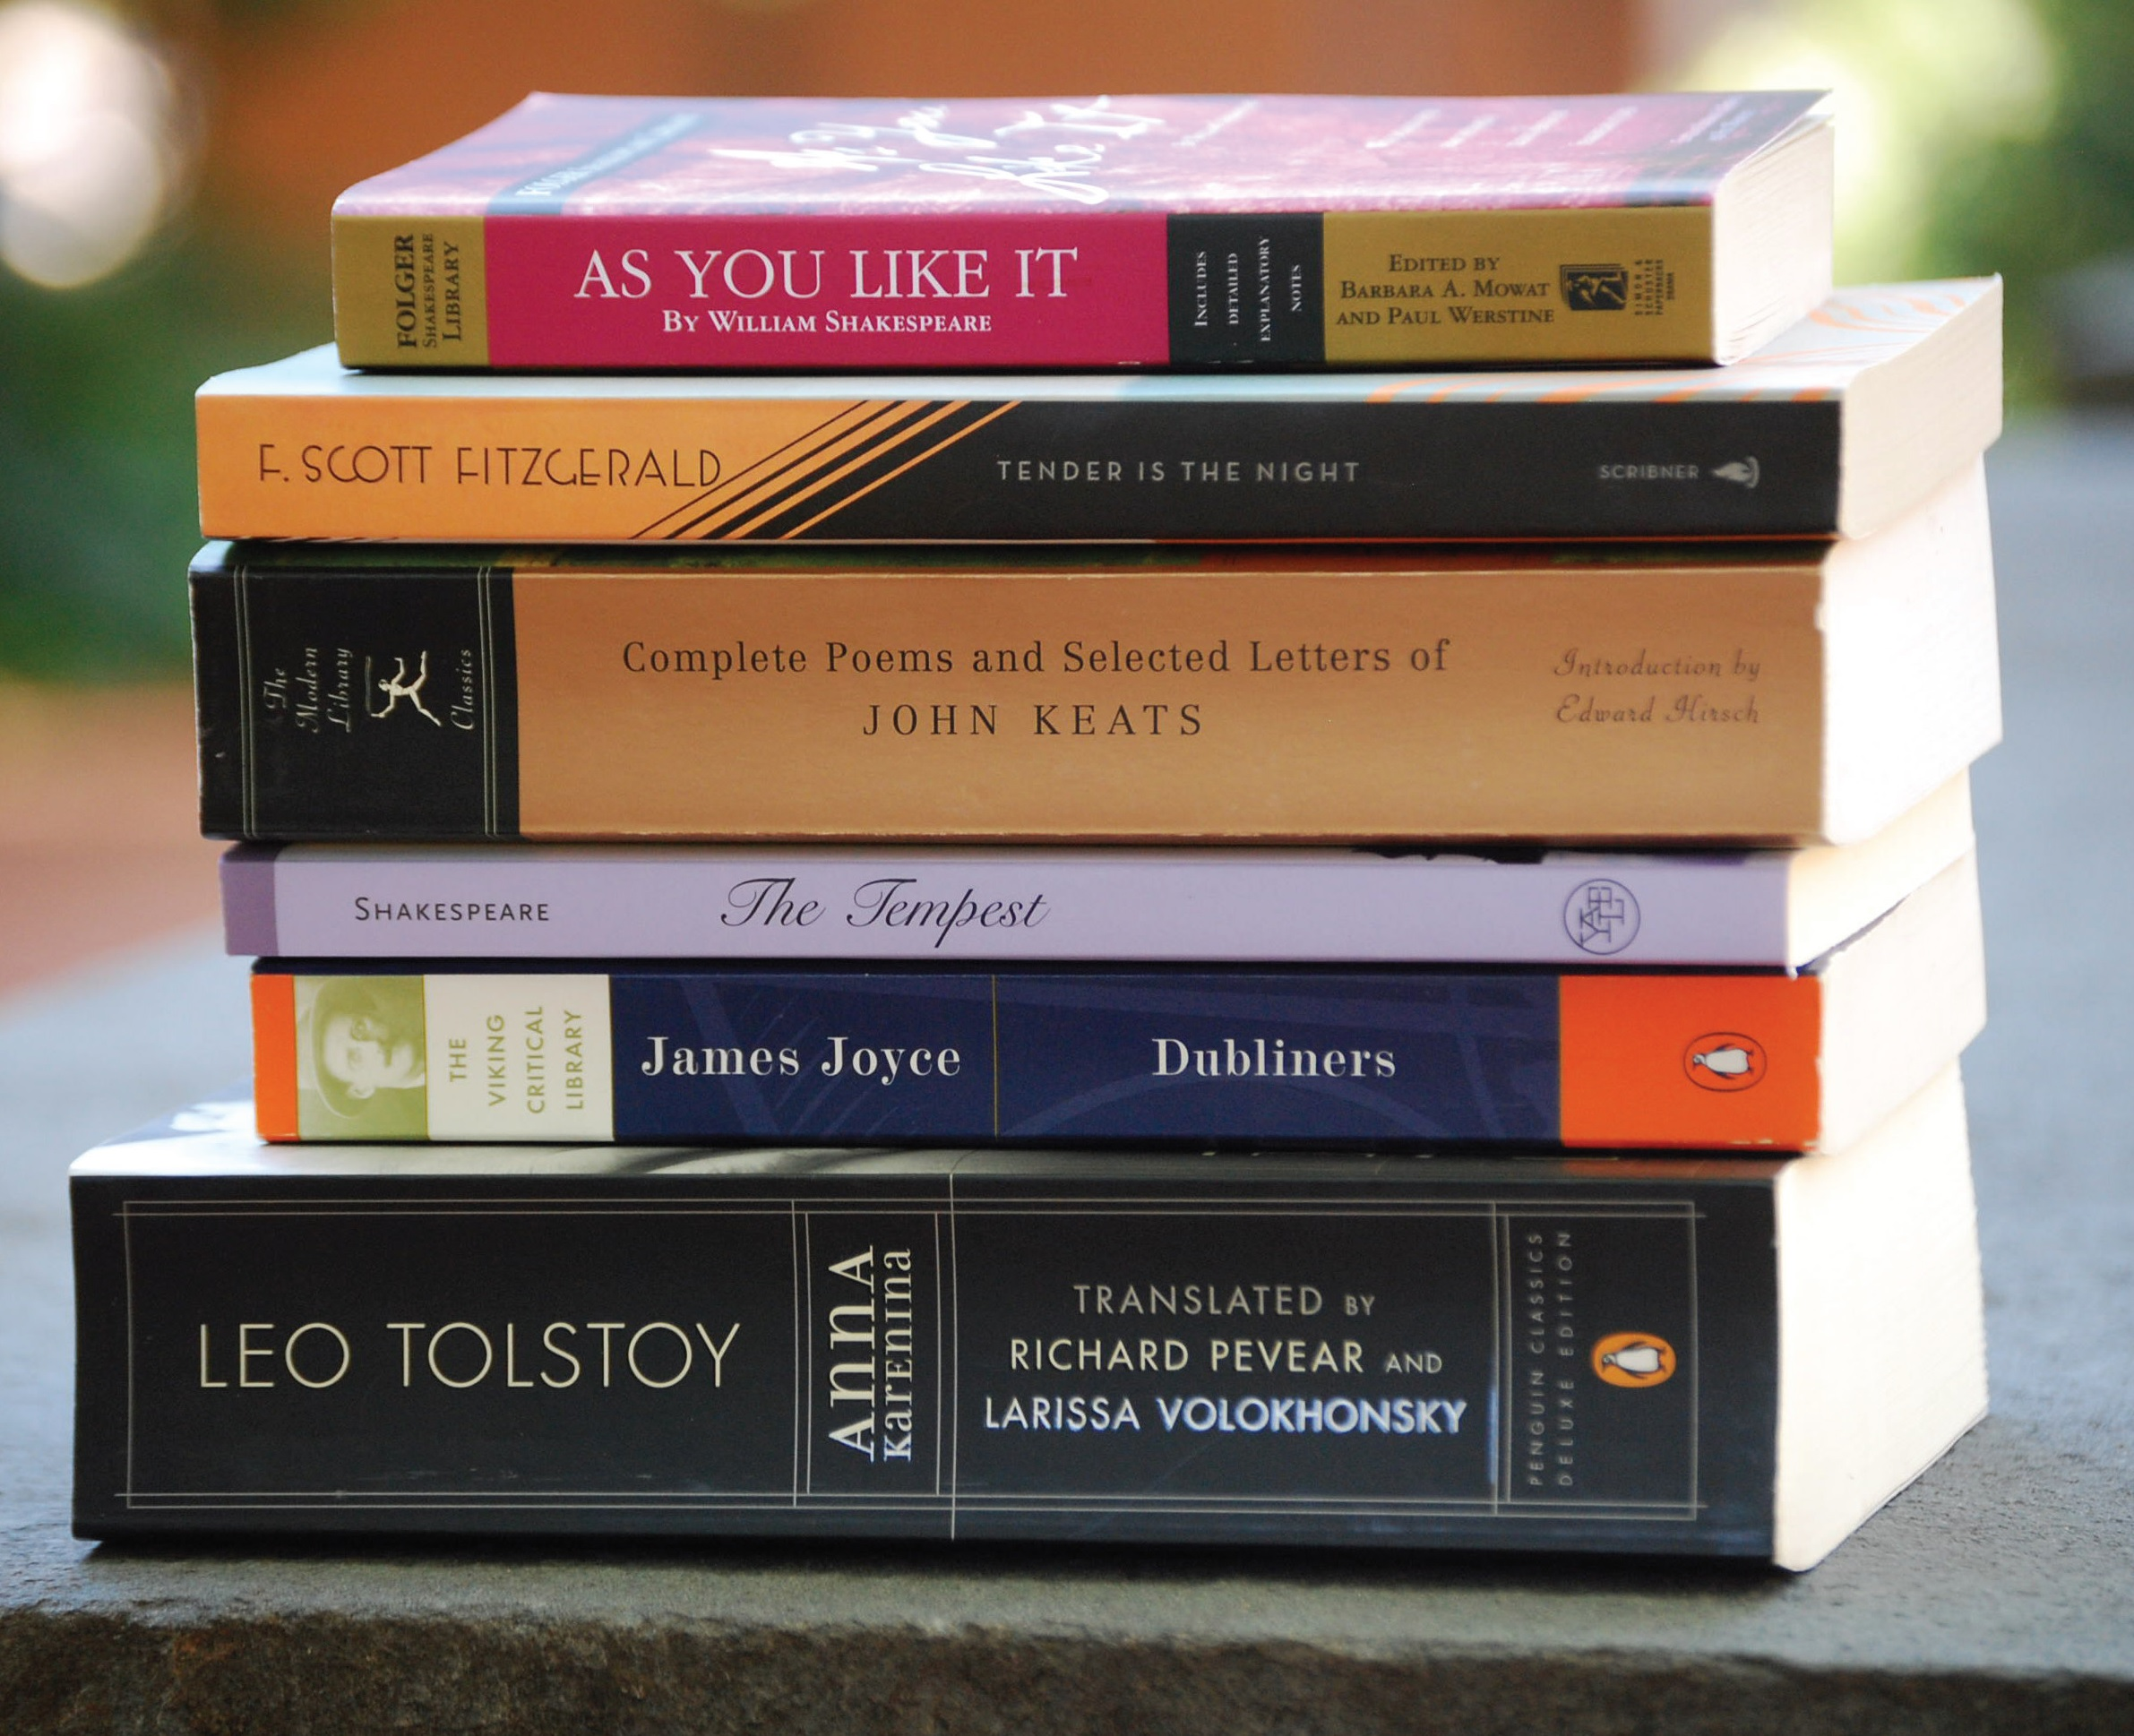 The following authors will be coming to Piraeus this year...